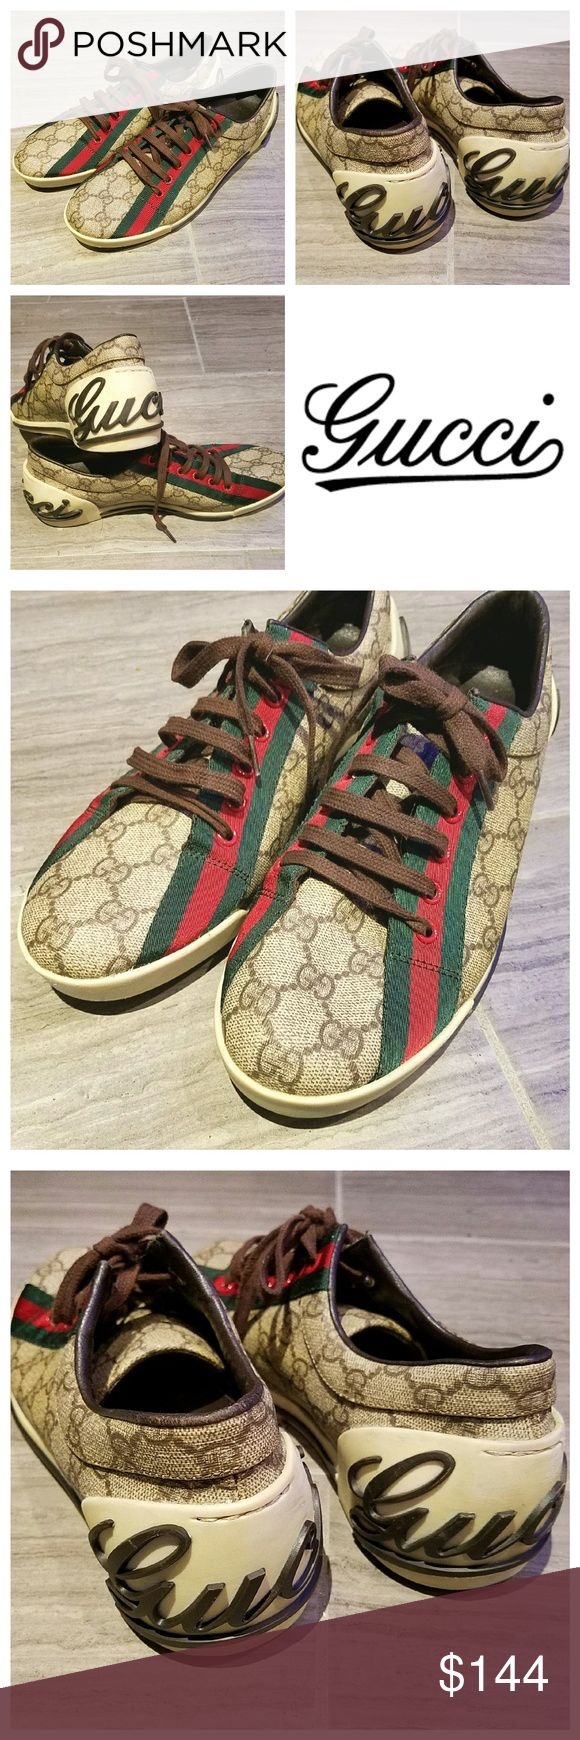 RETRO AUTHENTIC GUCCI MONOGRAM LOGO SNEAKERS Excellent condition, only wore a couple times. AUTHENTIC GUCCI MONOGRAM SNEAKERS in classic 2 tone brown with the red & green racing stripe and script Gucci signature on back. Very minor wear, 2 marker spots on bitten of one shoe, minor scuffs, minor discoloring. No tears or holes. Guaranteed authentic. No box. Size 38.5 Gucci Shoes Sneakers